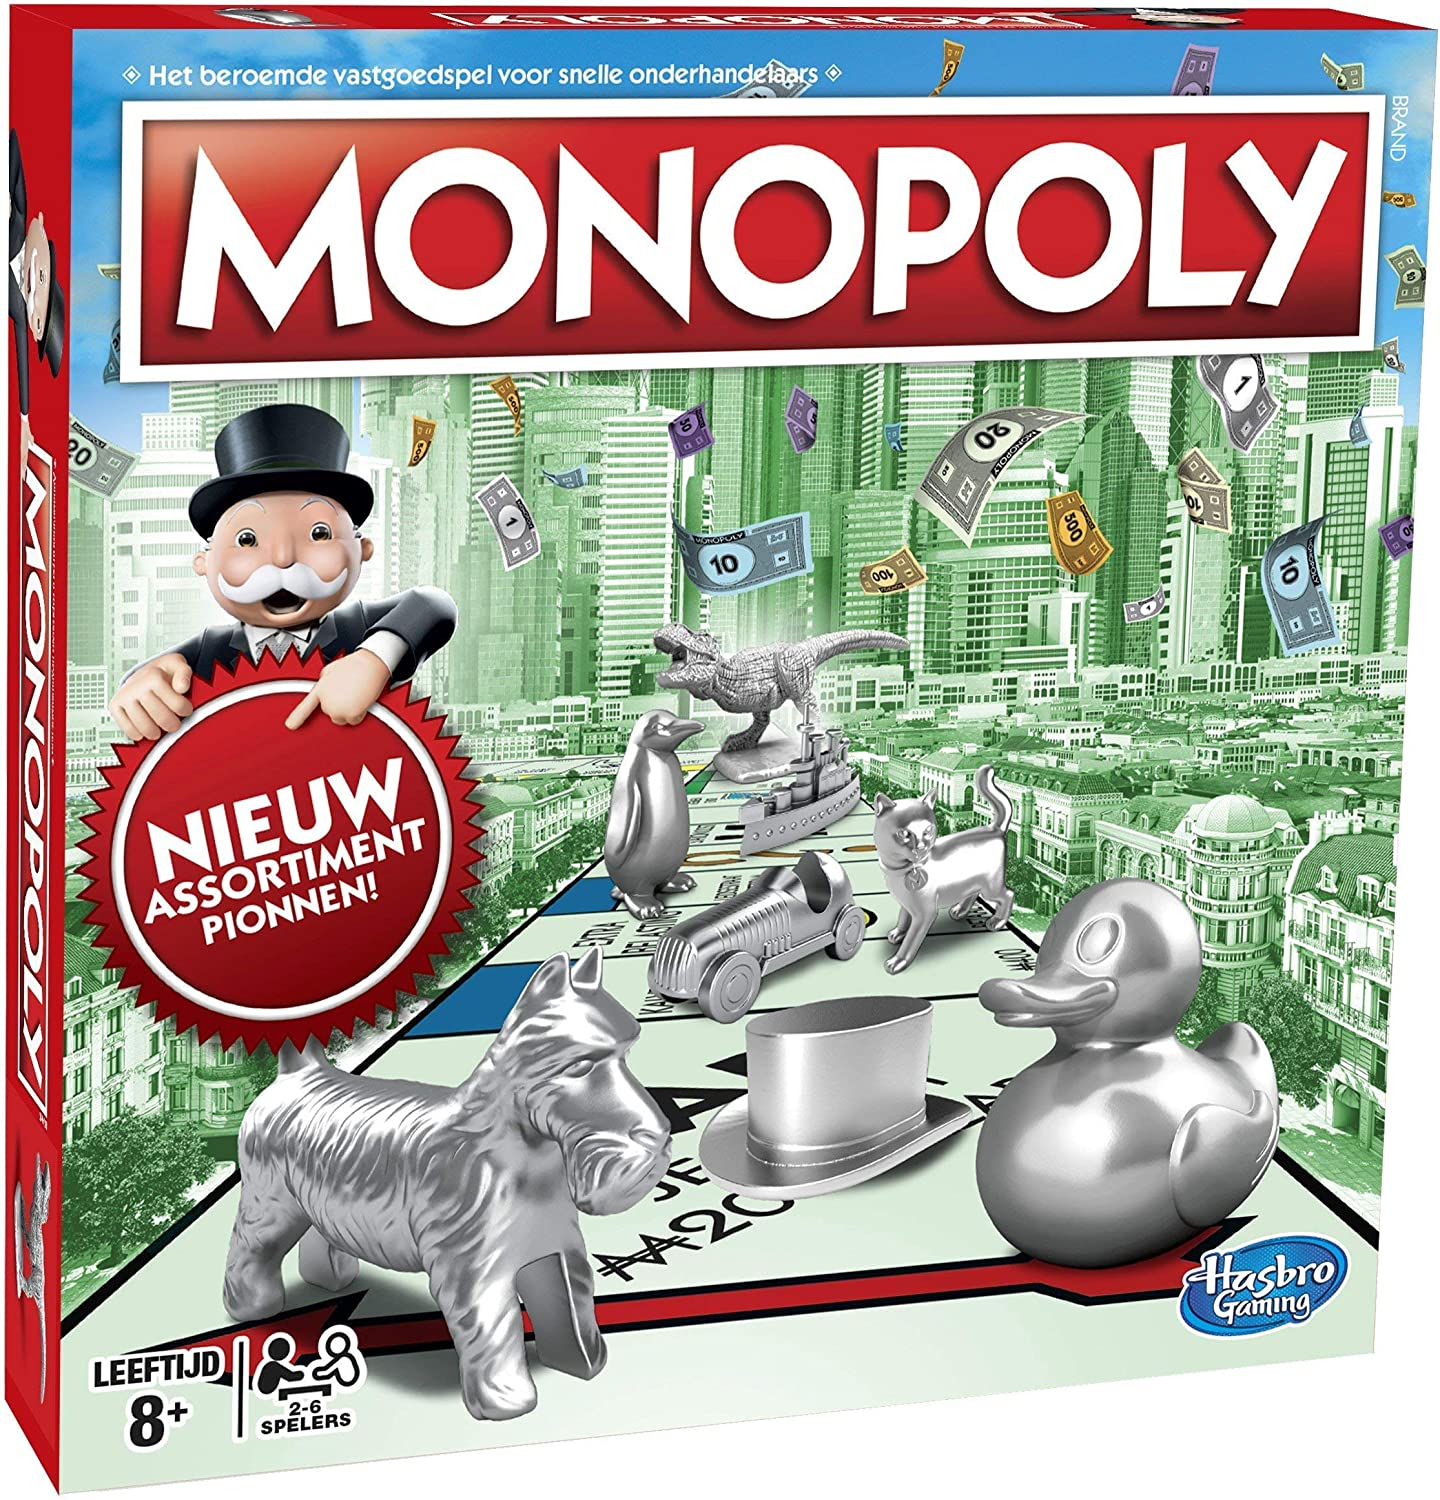 Monopoly - Outstanding Various Classic